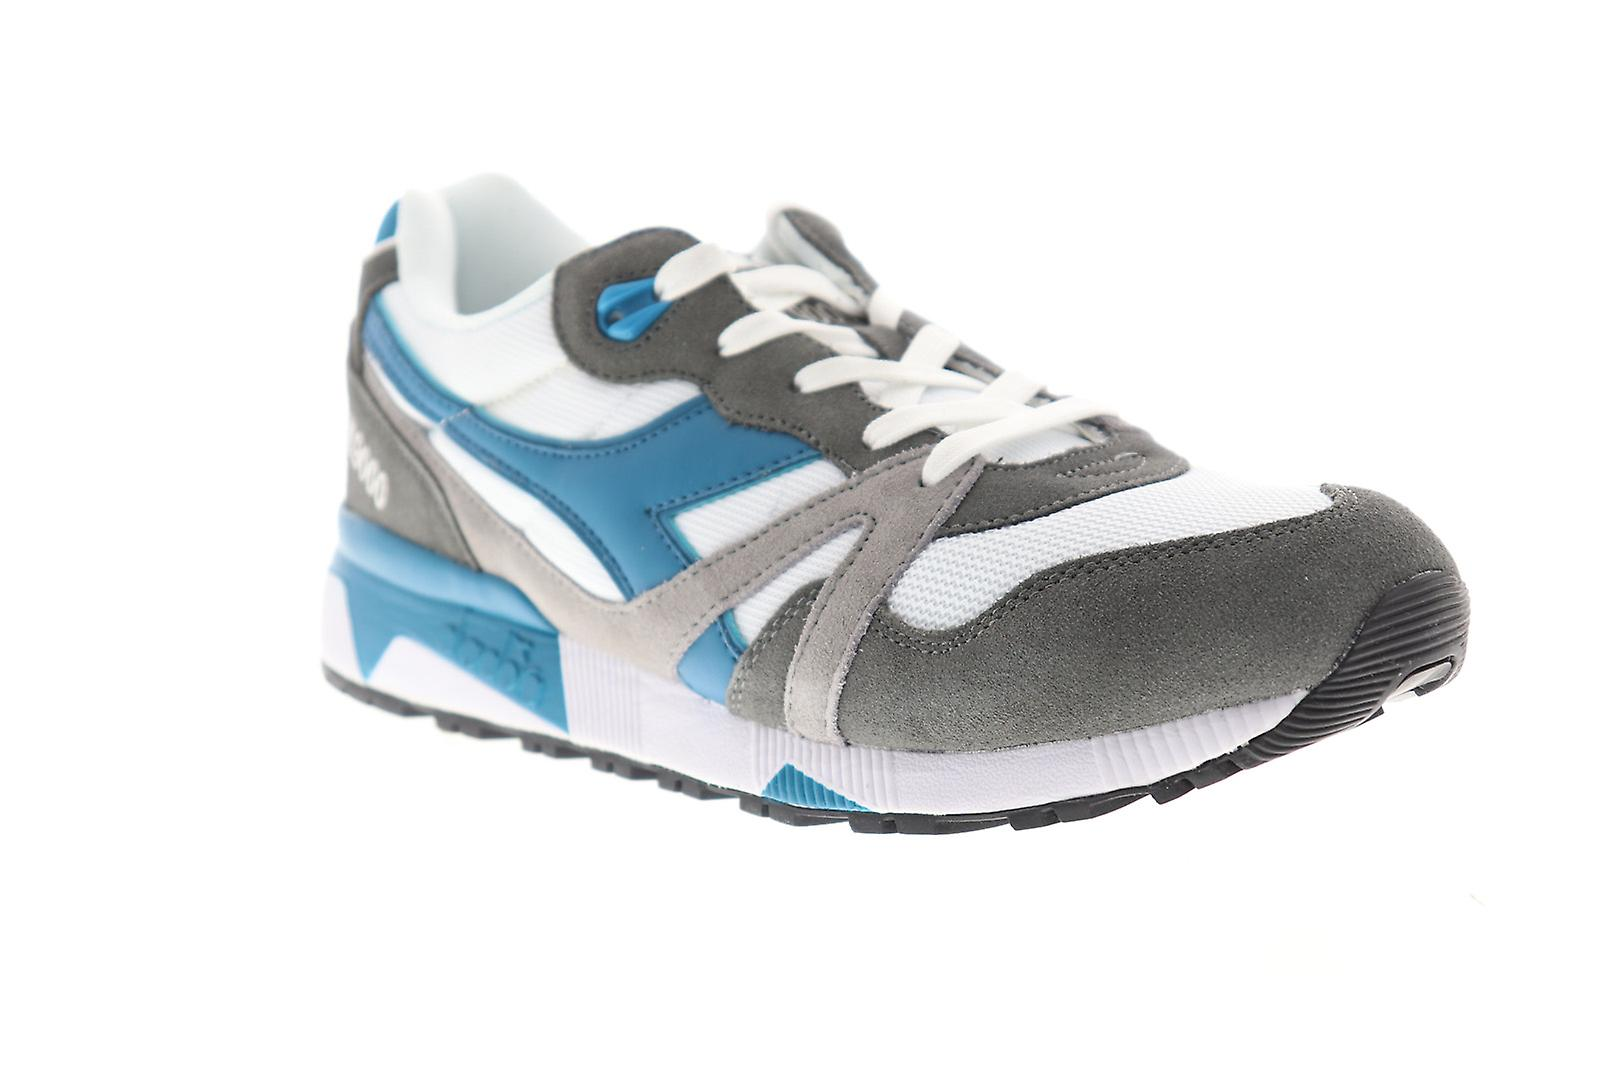 2dce2f33 Diadora N9000 III Mens Gray Suede & Mesh Athletic Lace Up Running Shoes